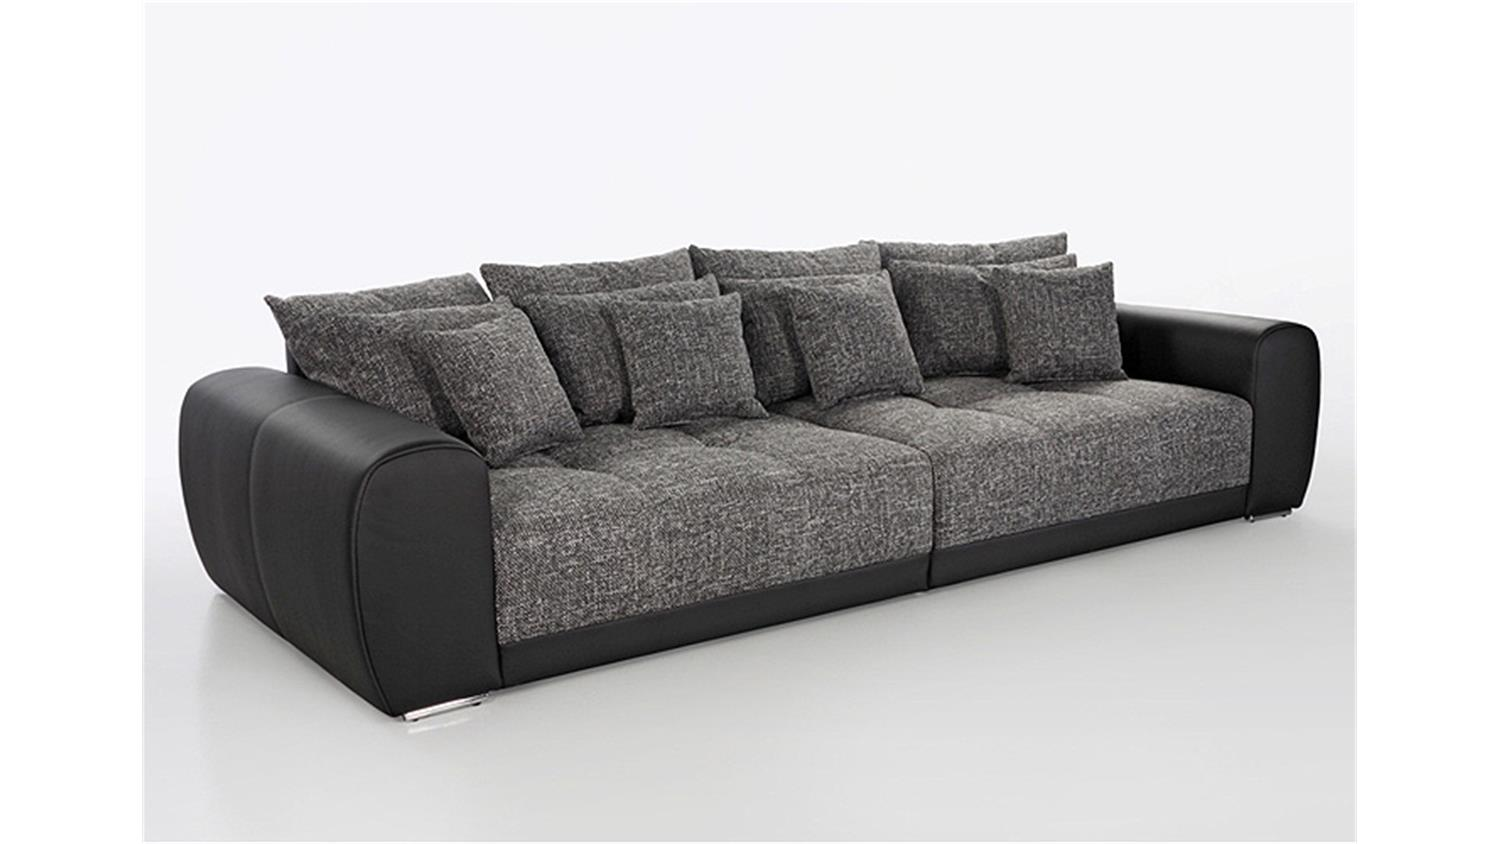 xxl sofa leder images page 695 homeandgarden. Black Bedroom Furniture Sets. Home Design Ideas